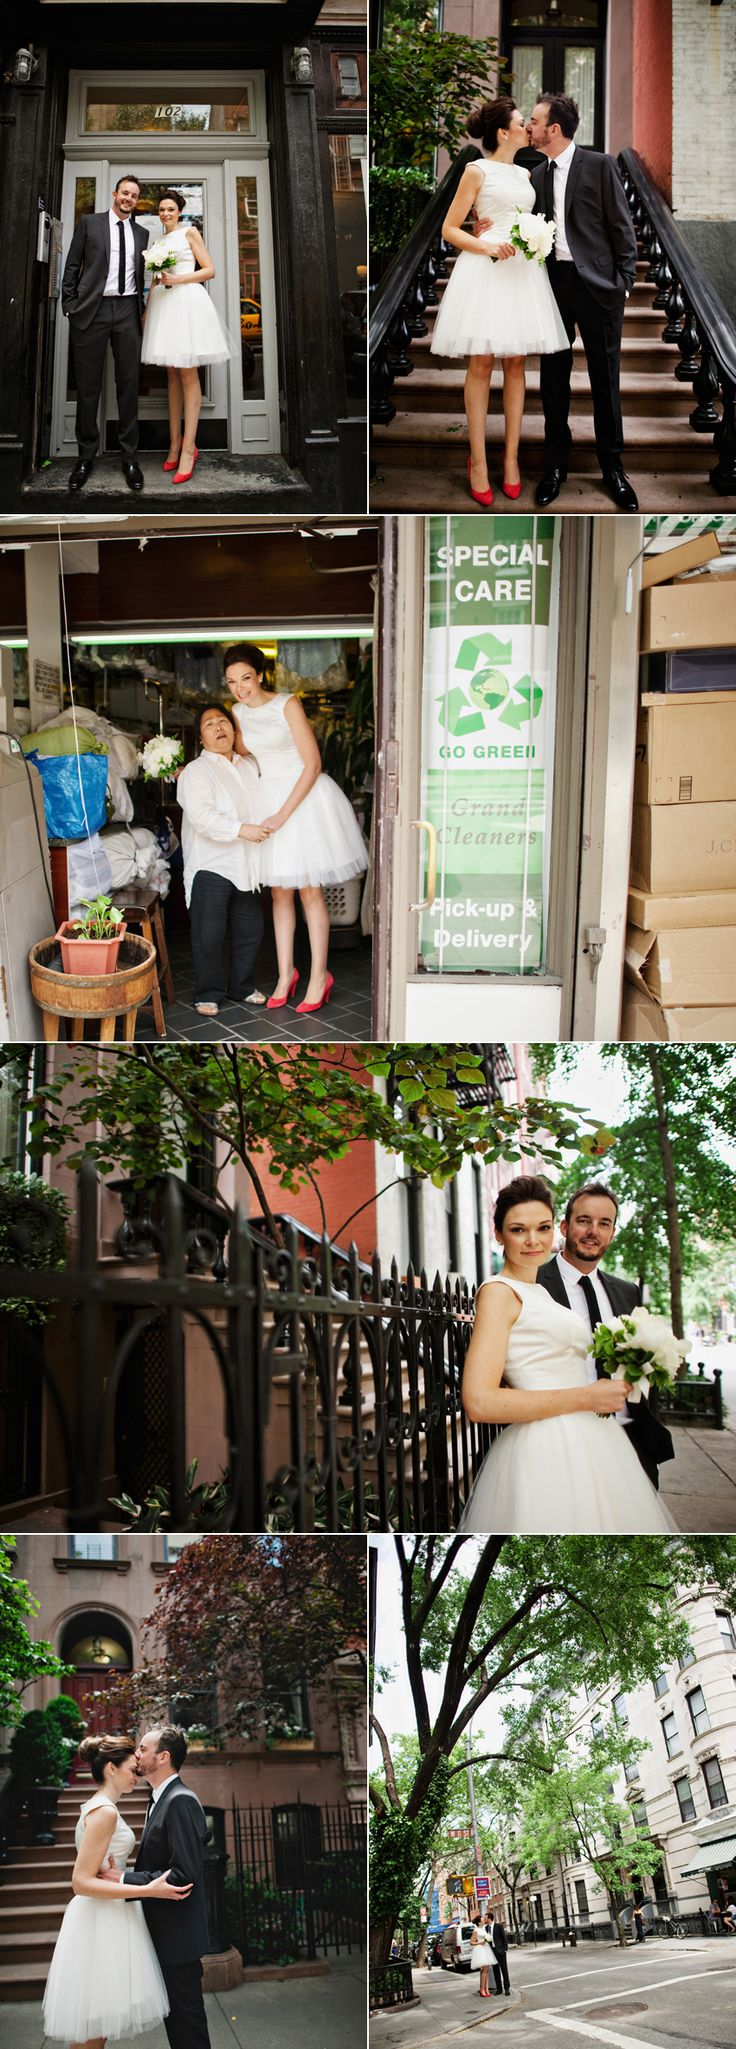 best images about new york weddings on pinterest happenings